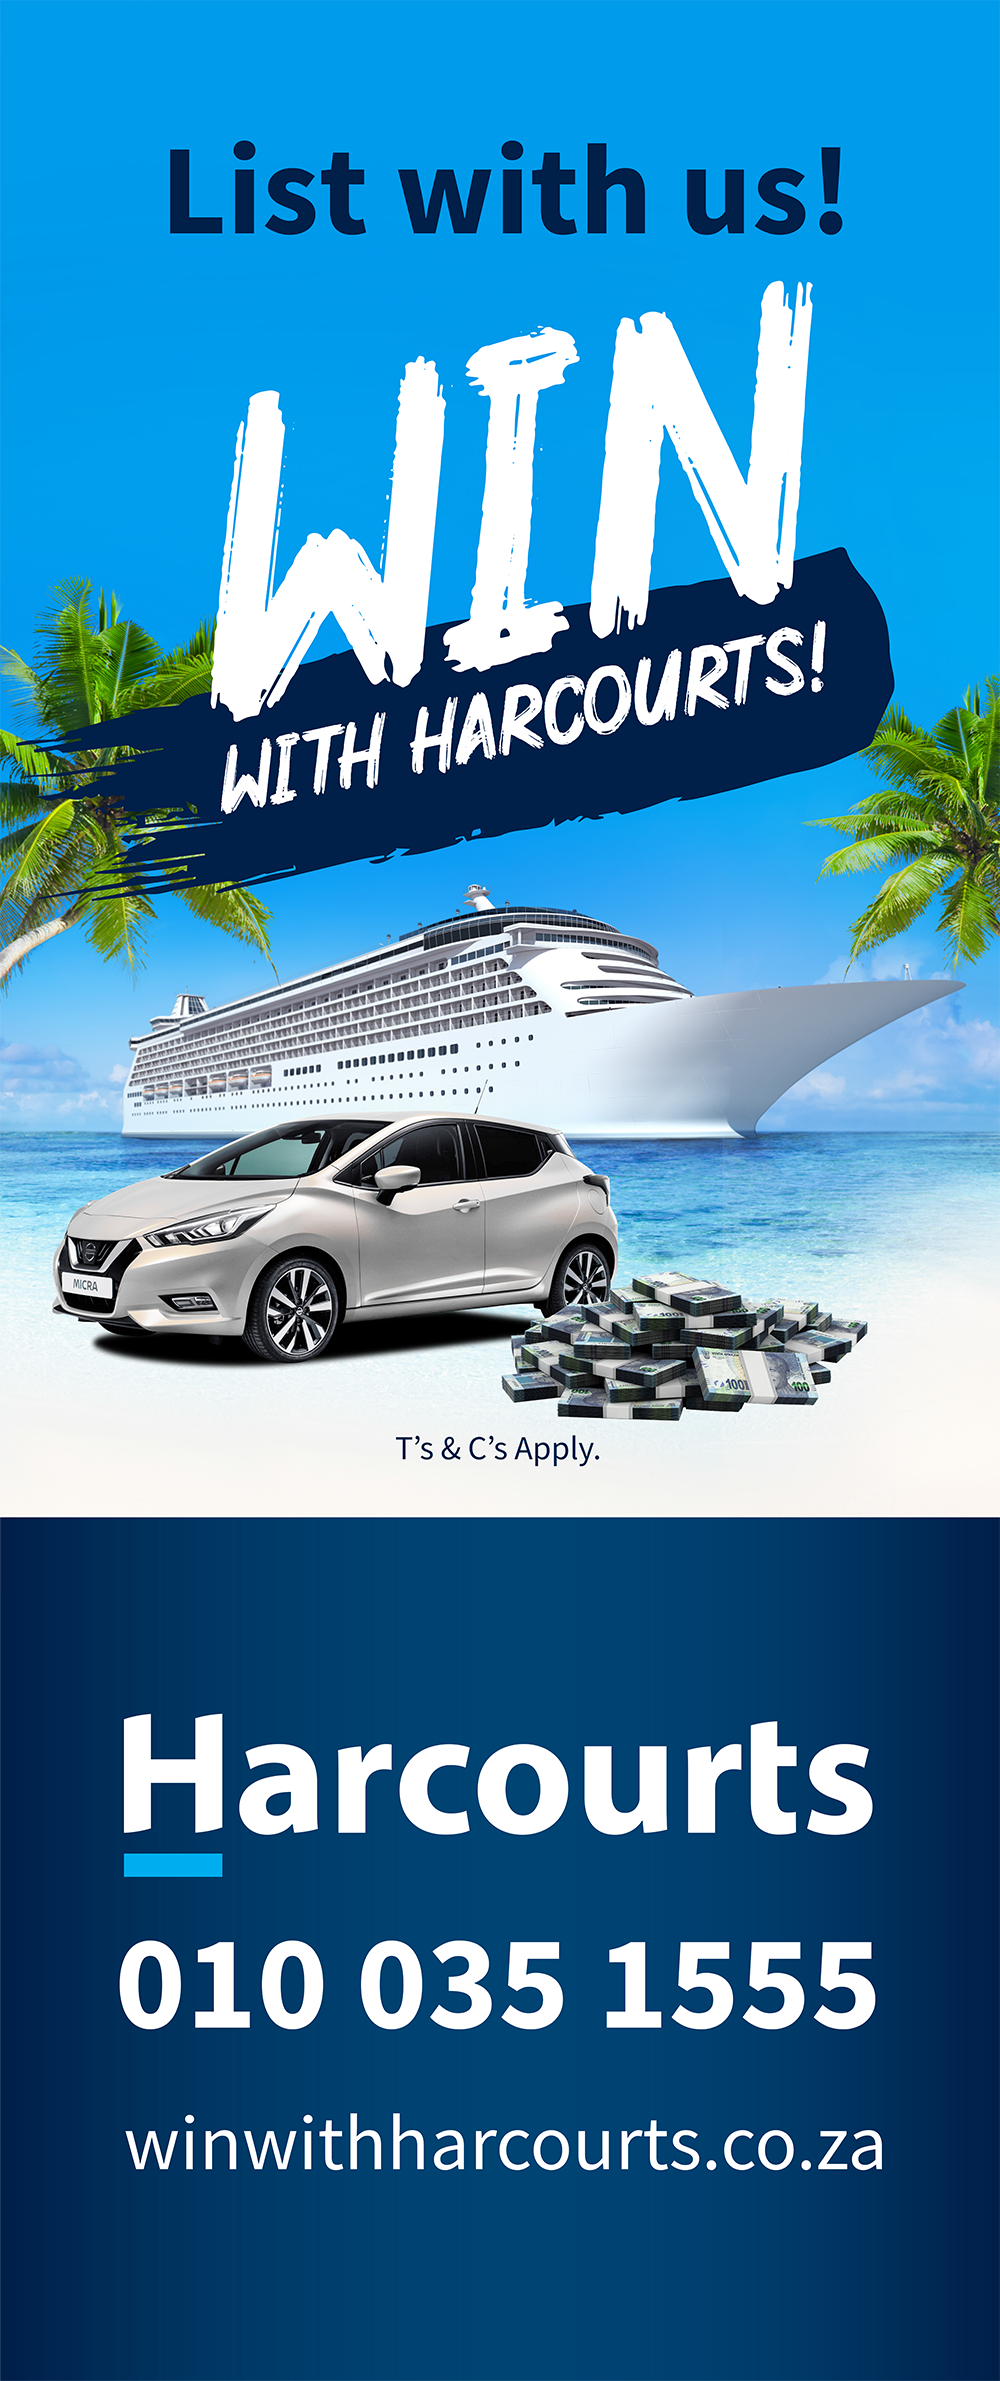 Win With Harcourts